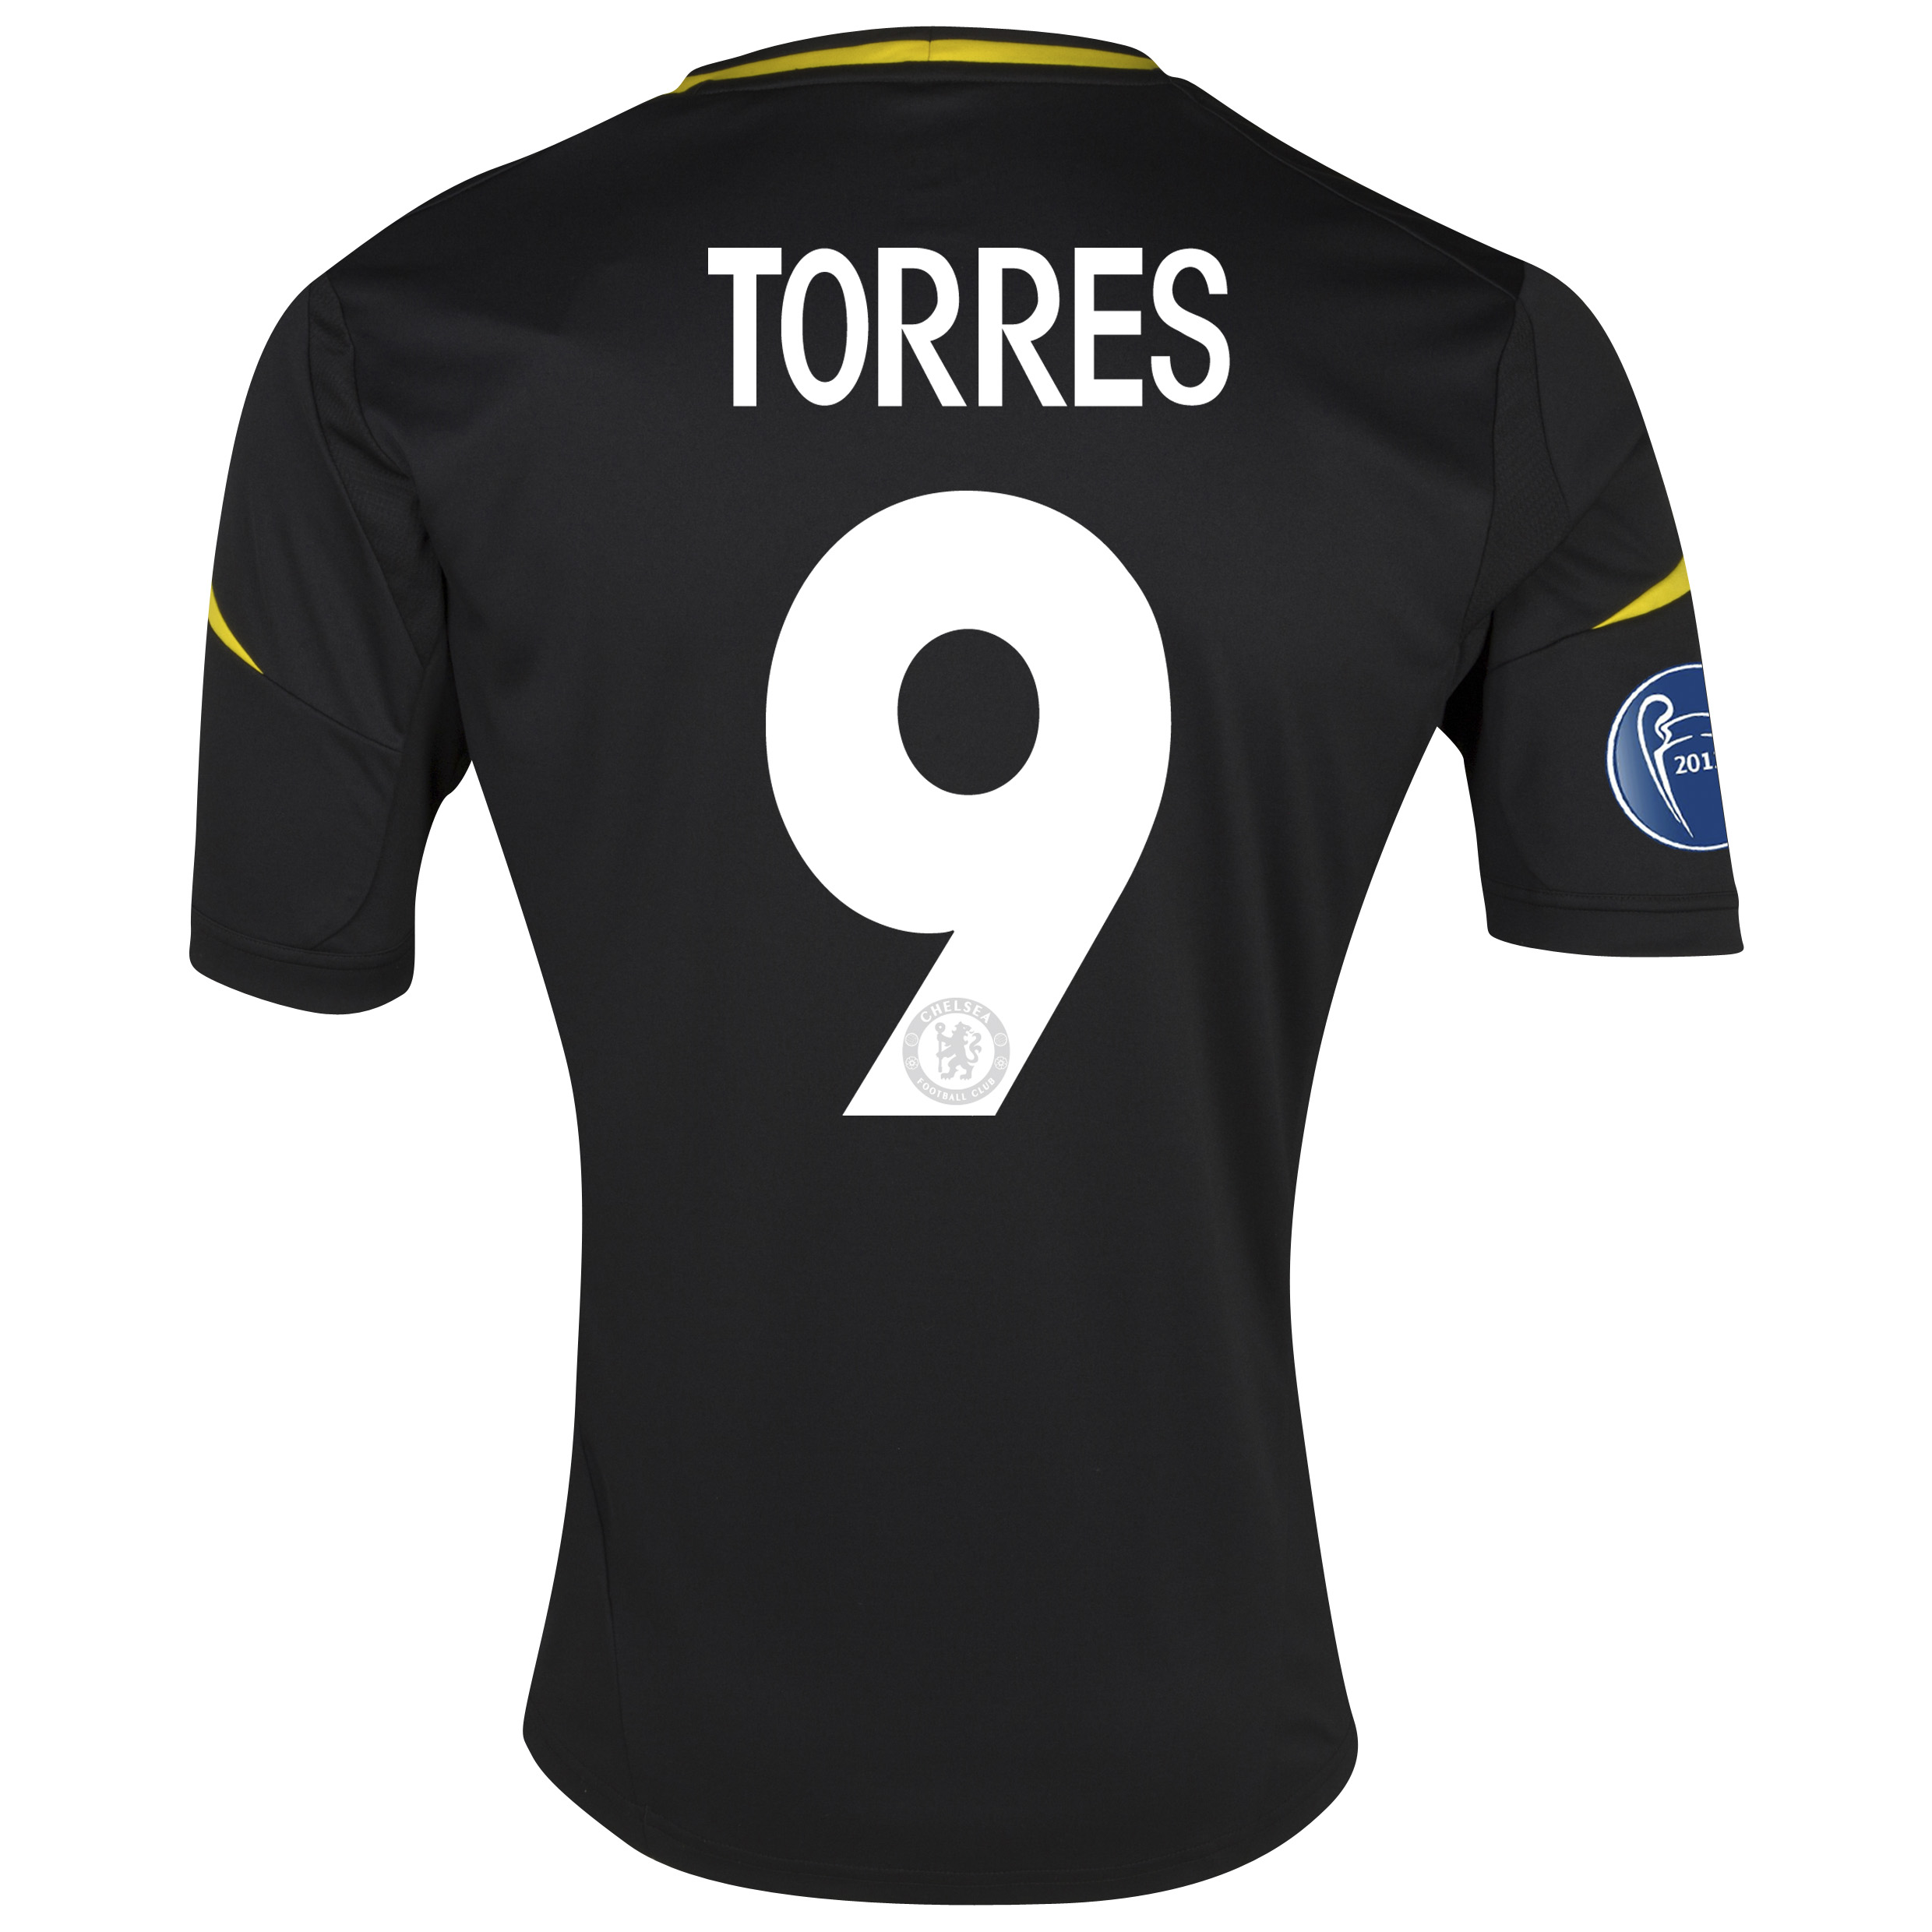 Chelsea UEFA Champions League Third Shirt 2012/13 with Torres 9 printing